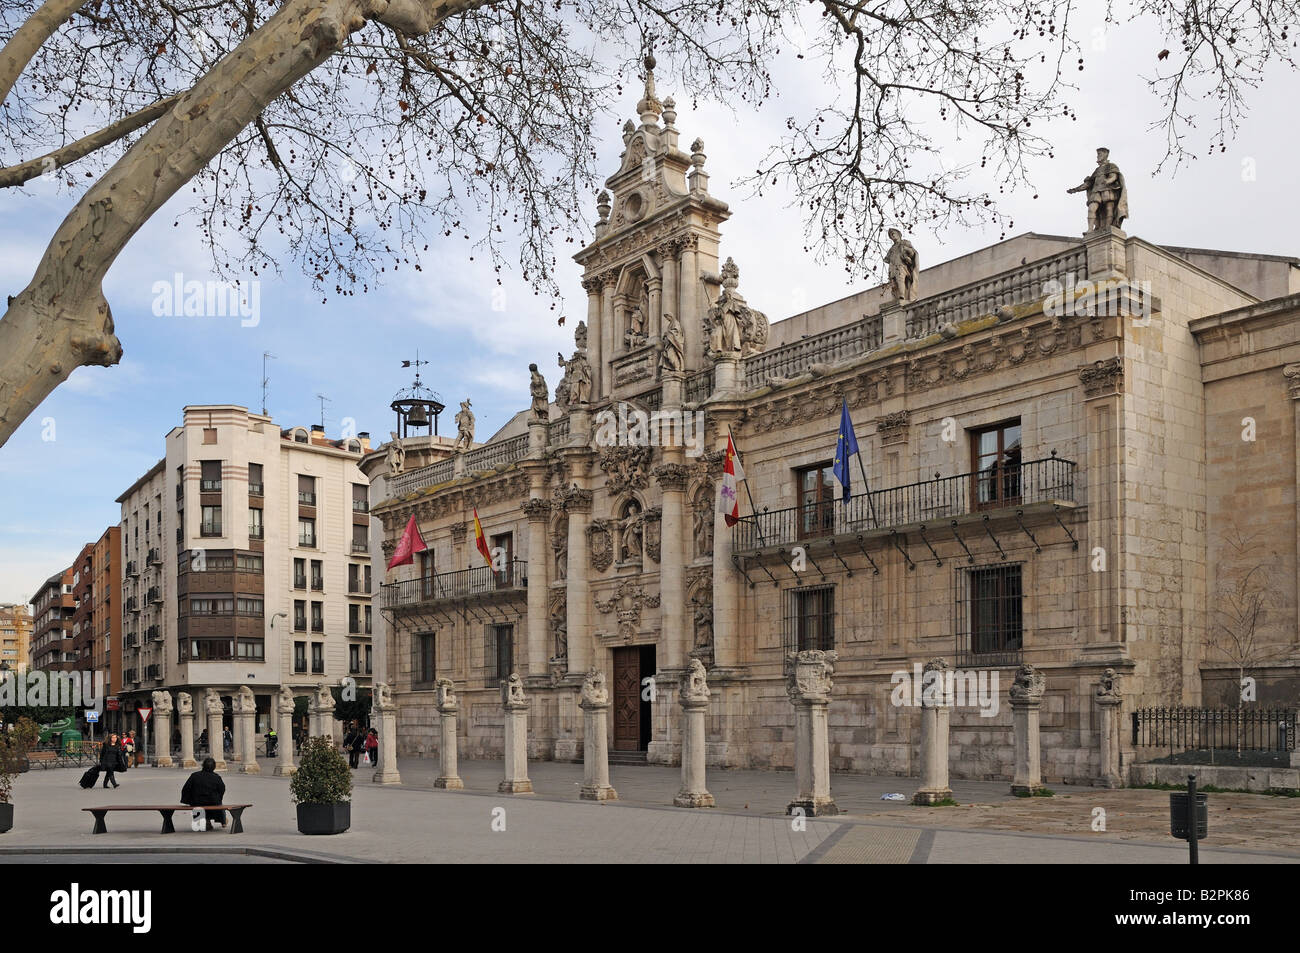 A line of pedestals with stone carved lions in front of the baroque façade of the Universidad University Valladolid - Stock Image